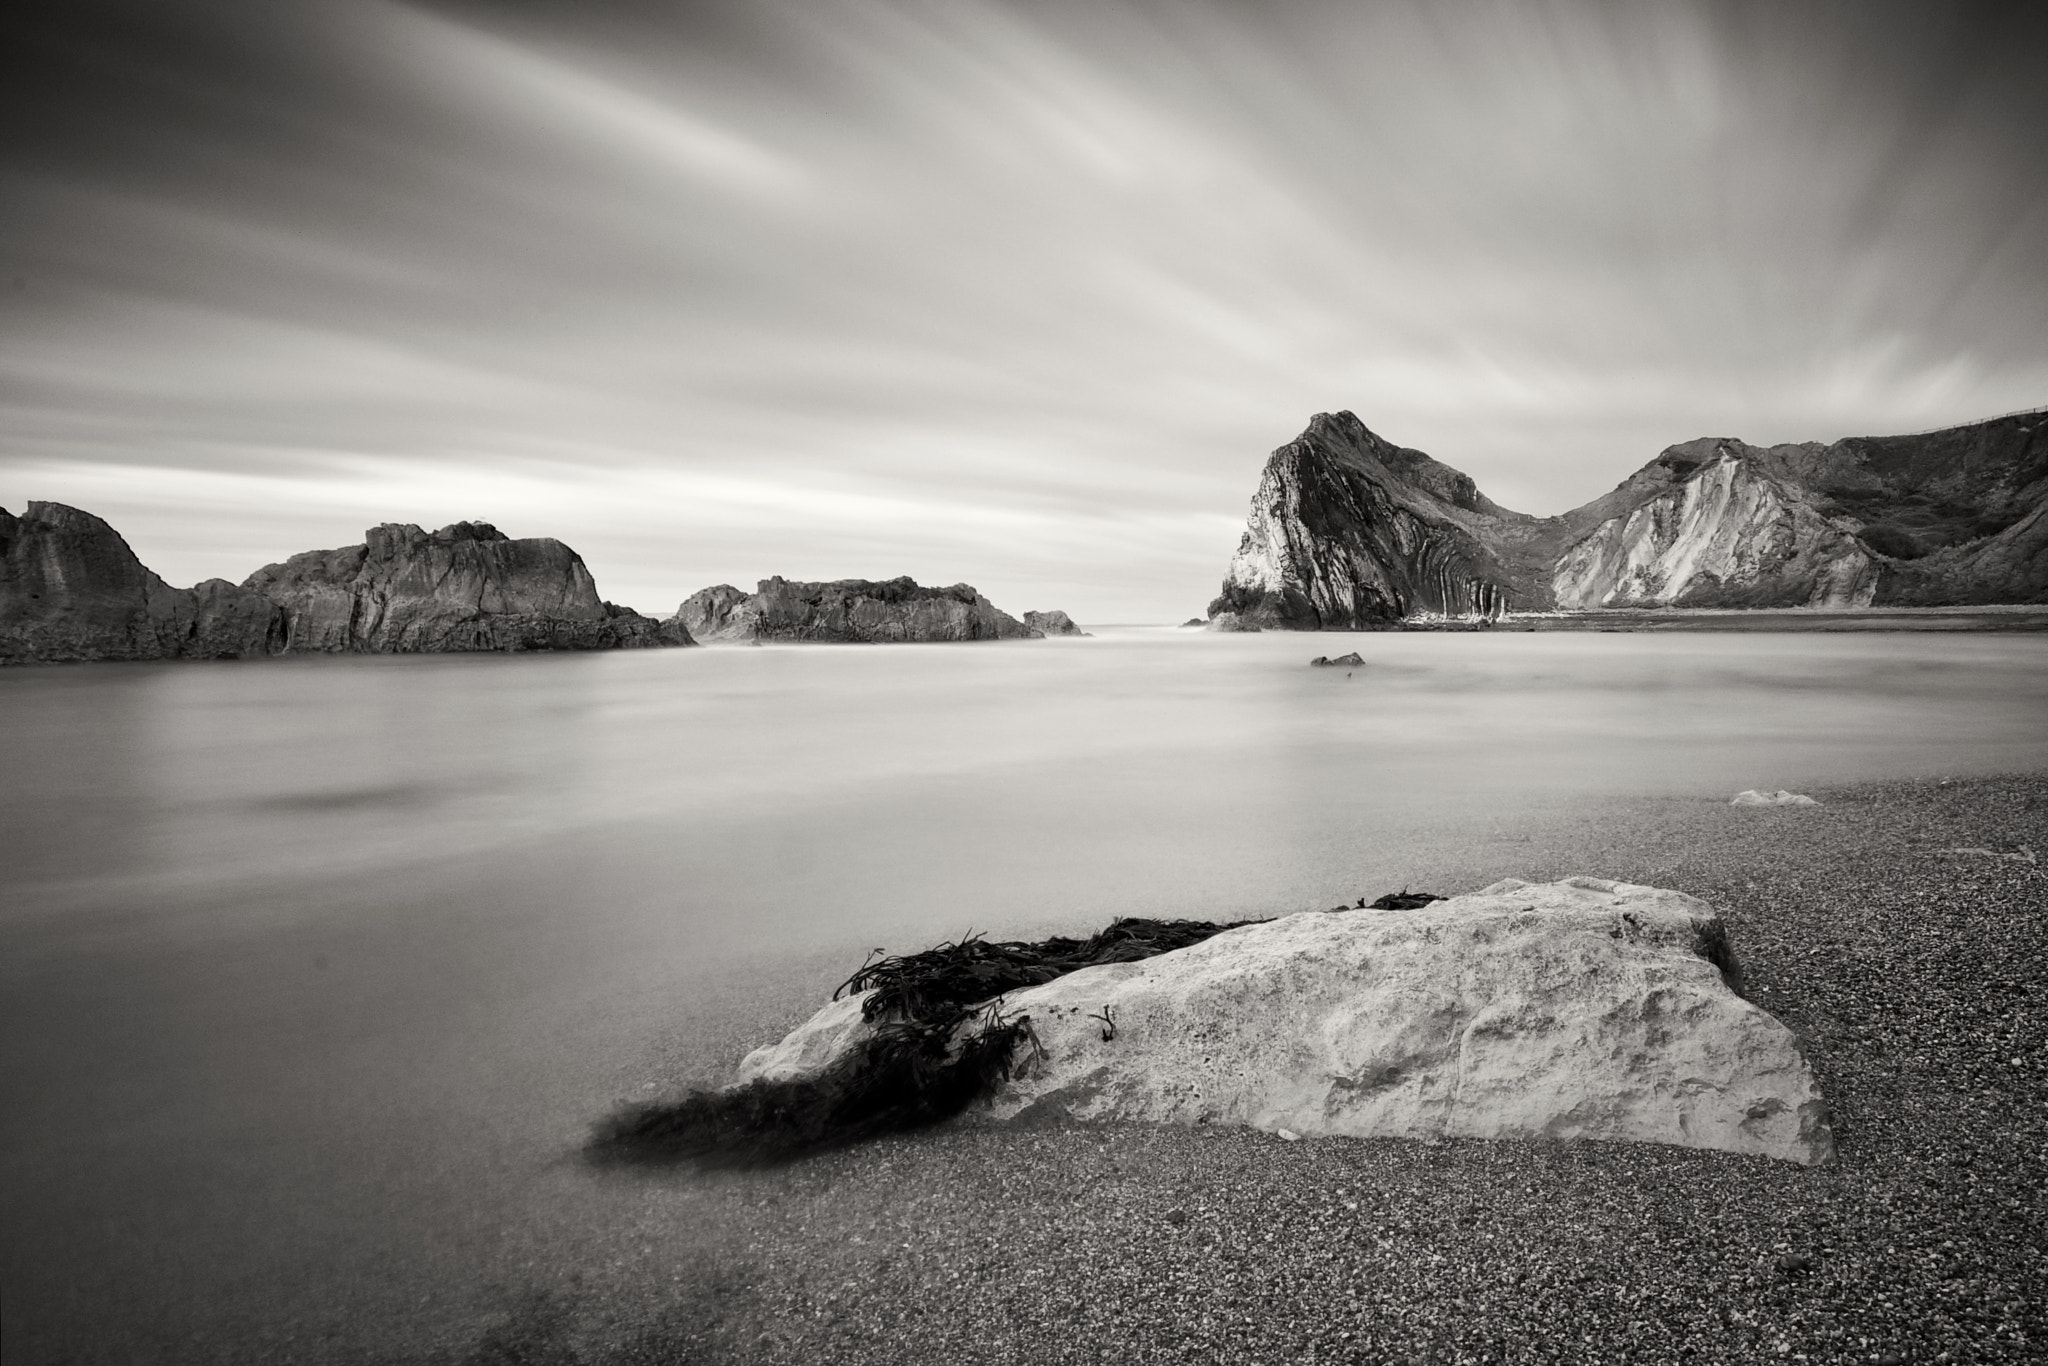 Photograph Man of War Cove, Dorset by Milan Juza on 500px